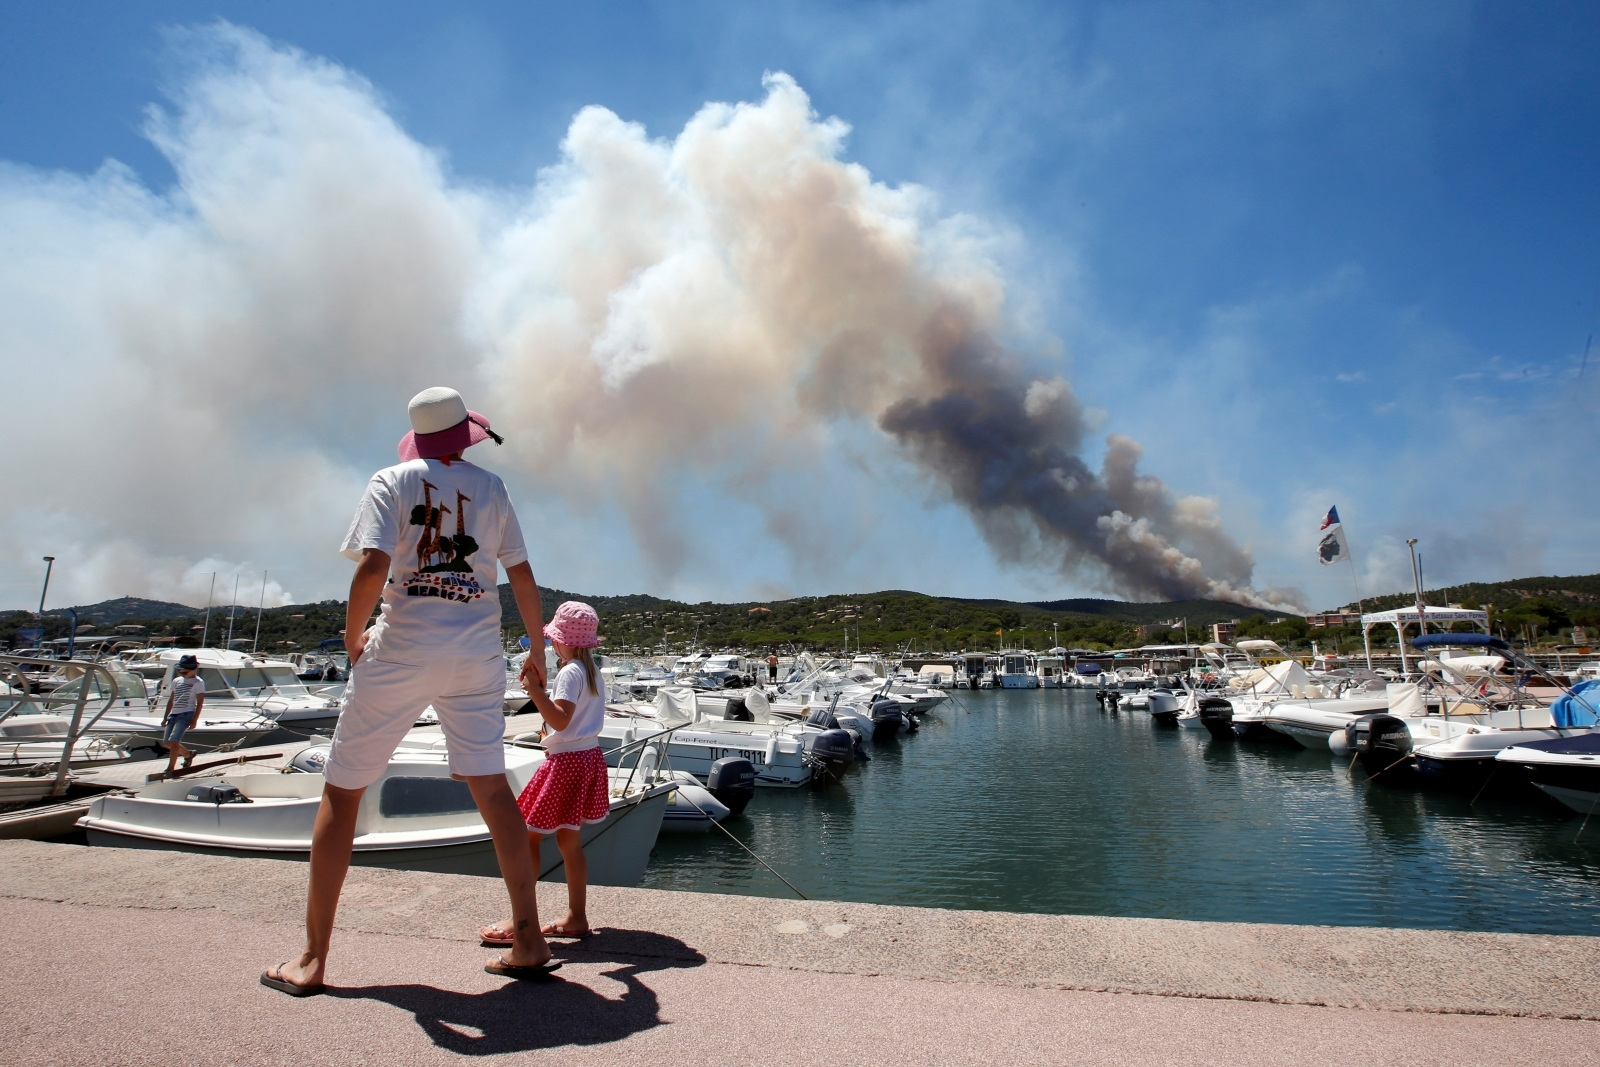 Fires at the Bormes-les-Mimosas, in the Var department, France